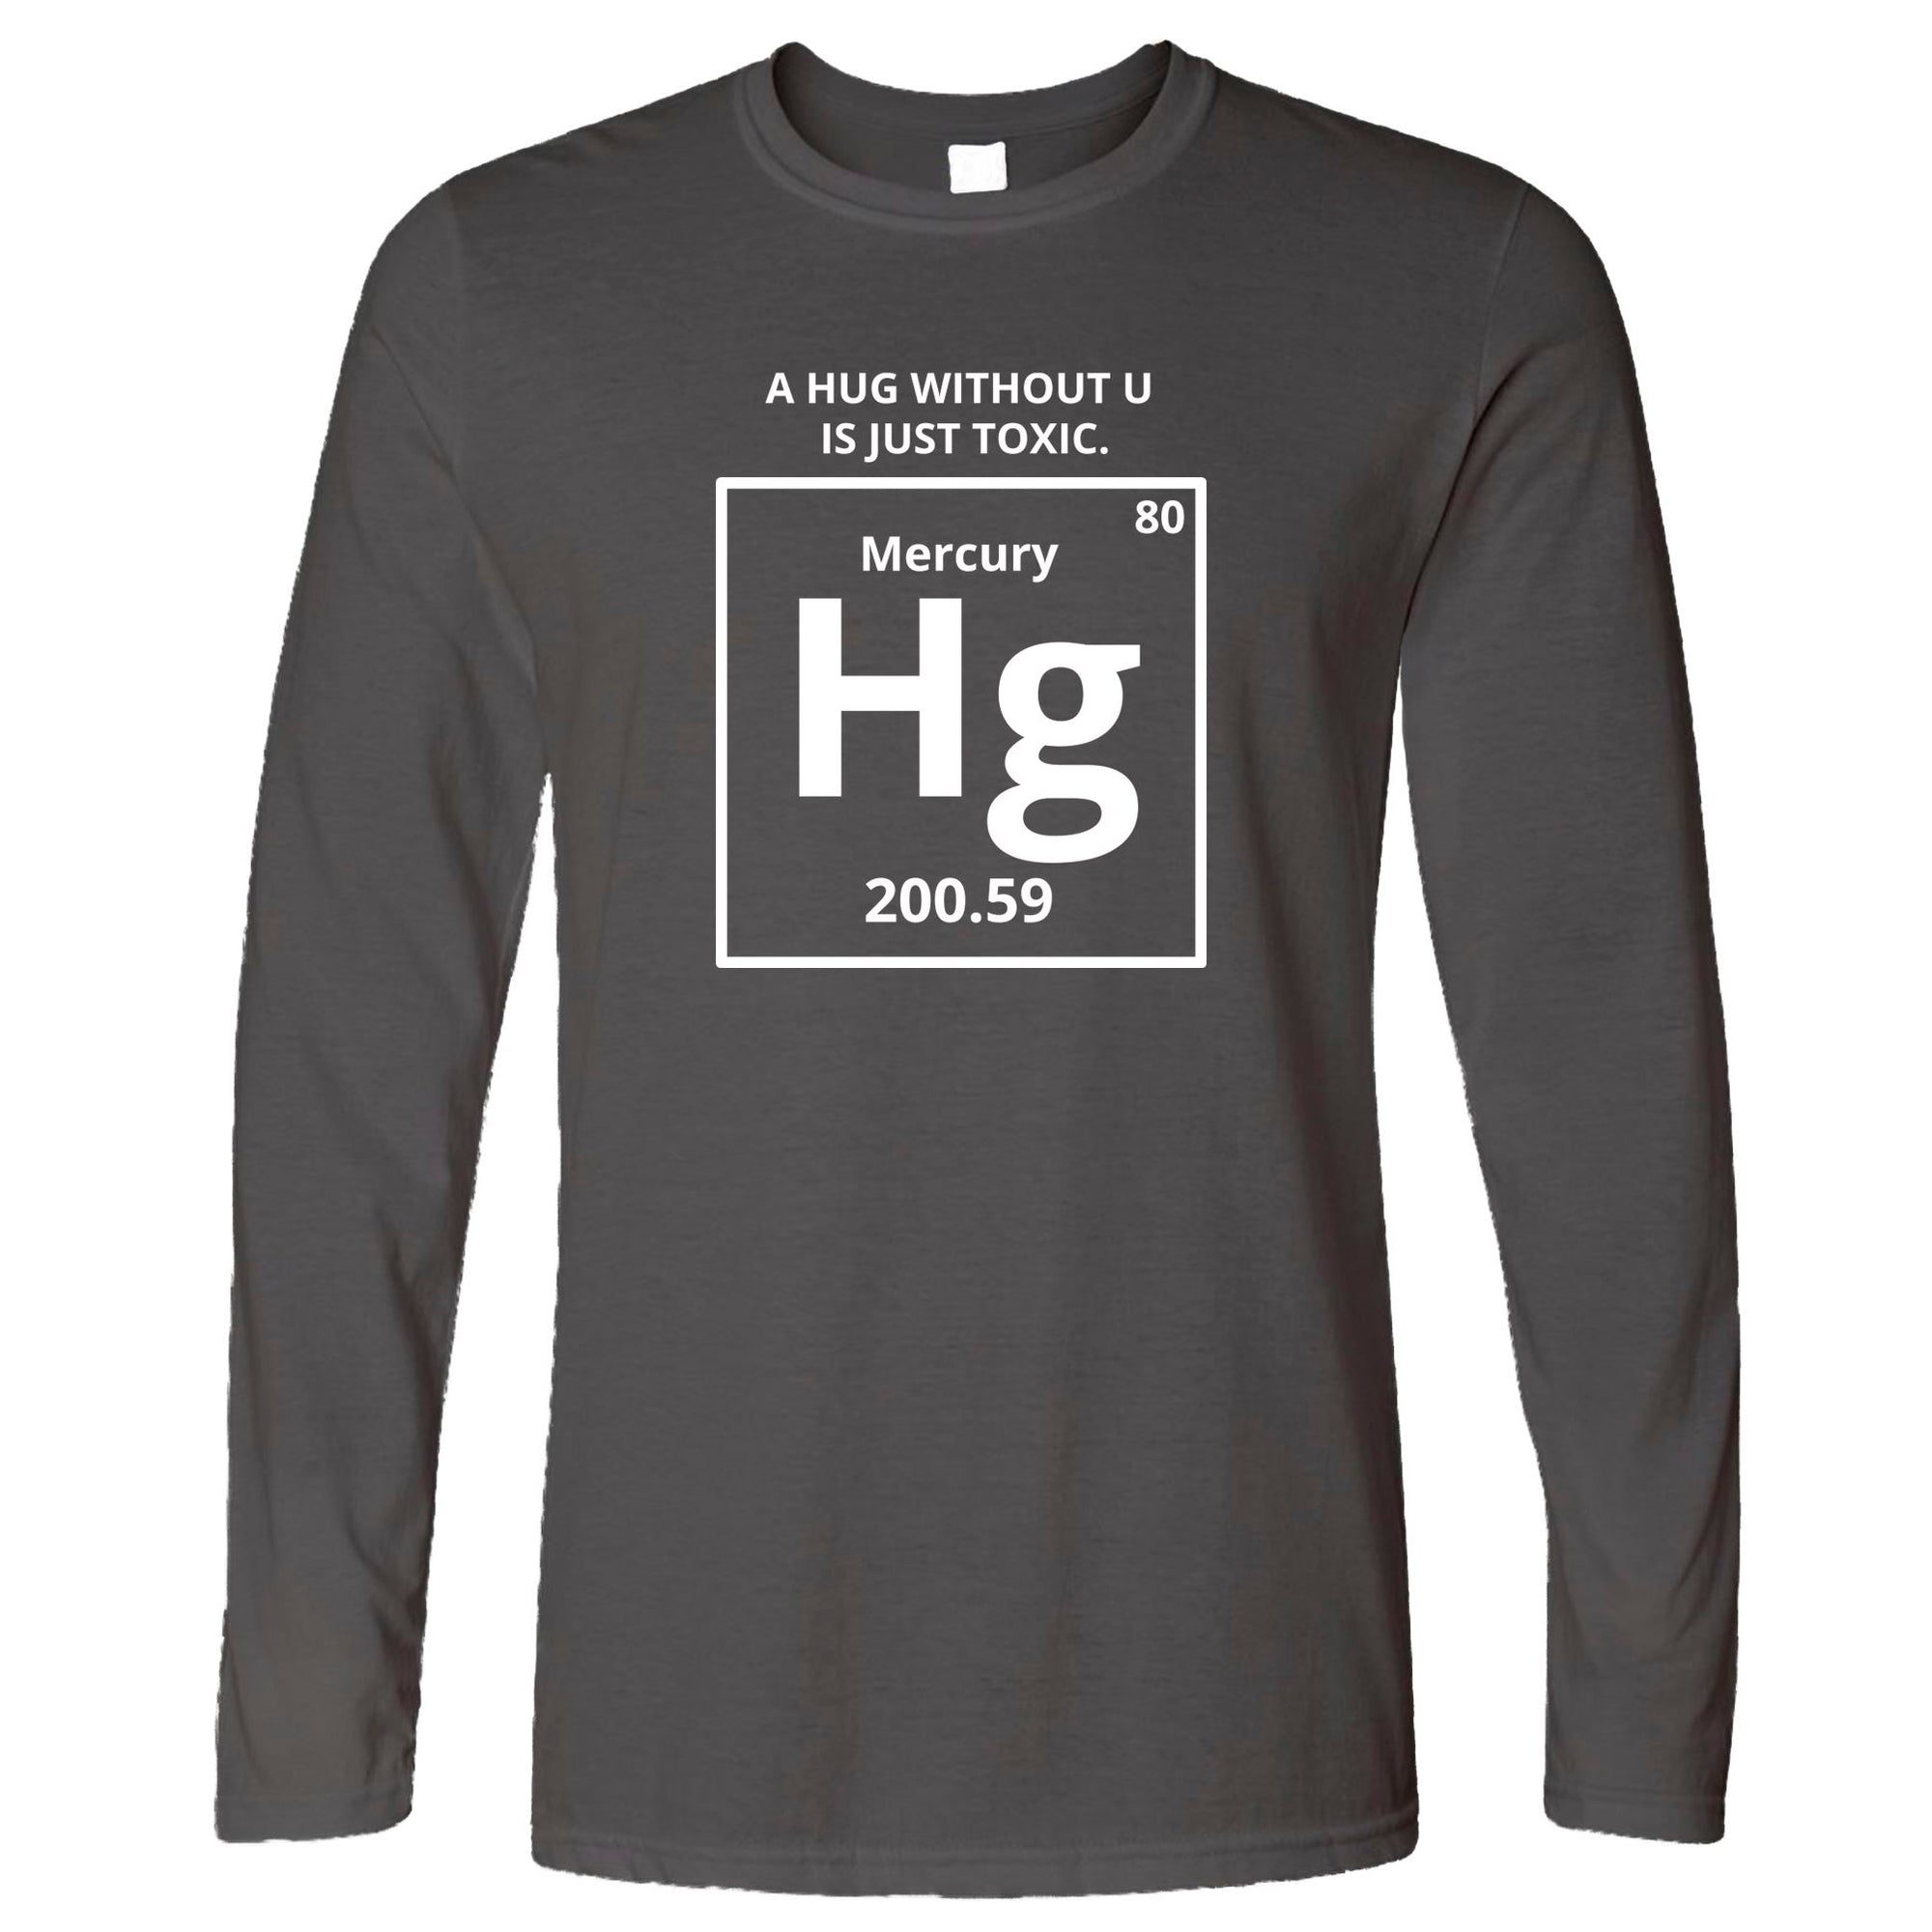 Funny Science Long Sleeve Mercury Hug Chemistry Joke T-Shirt